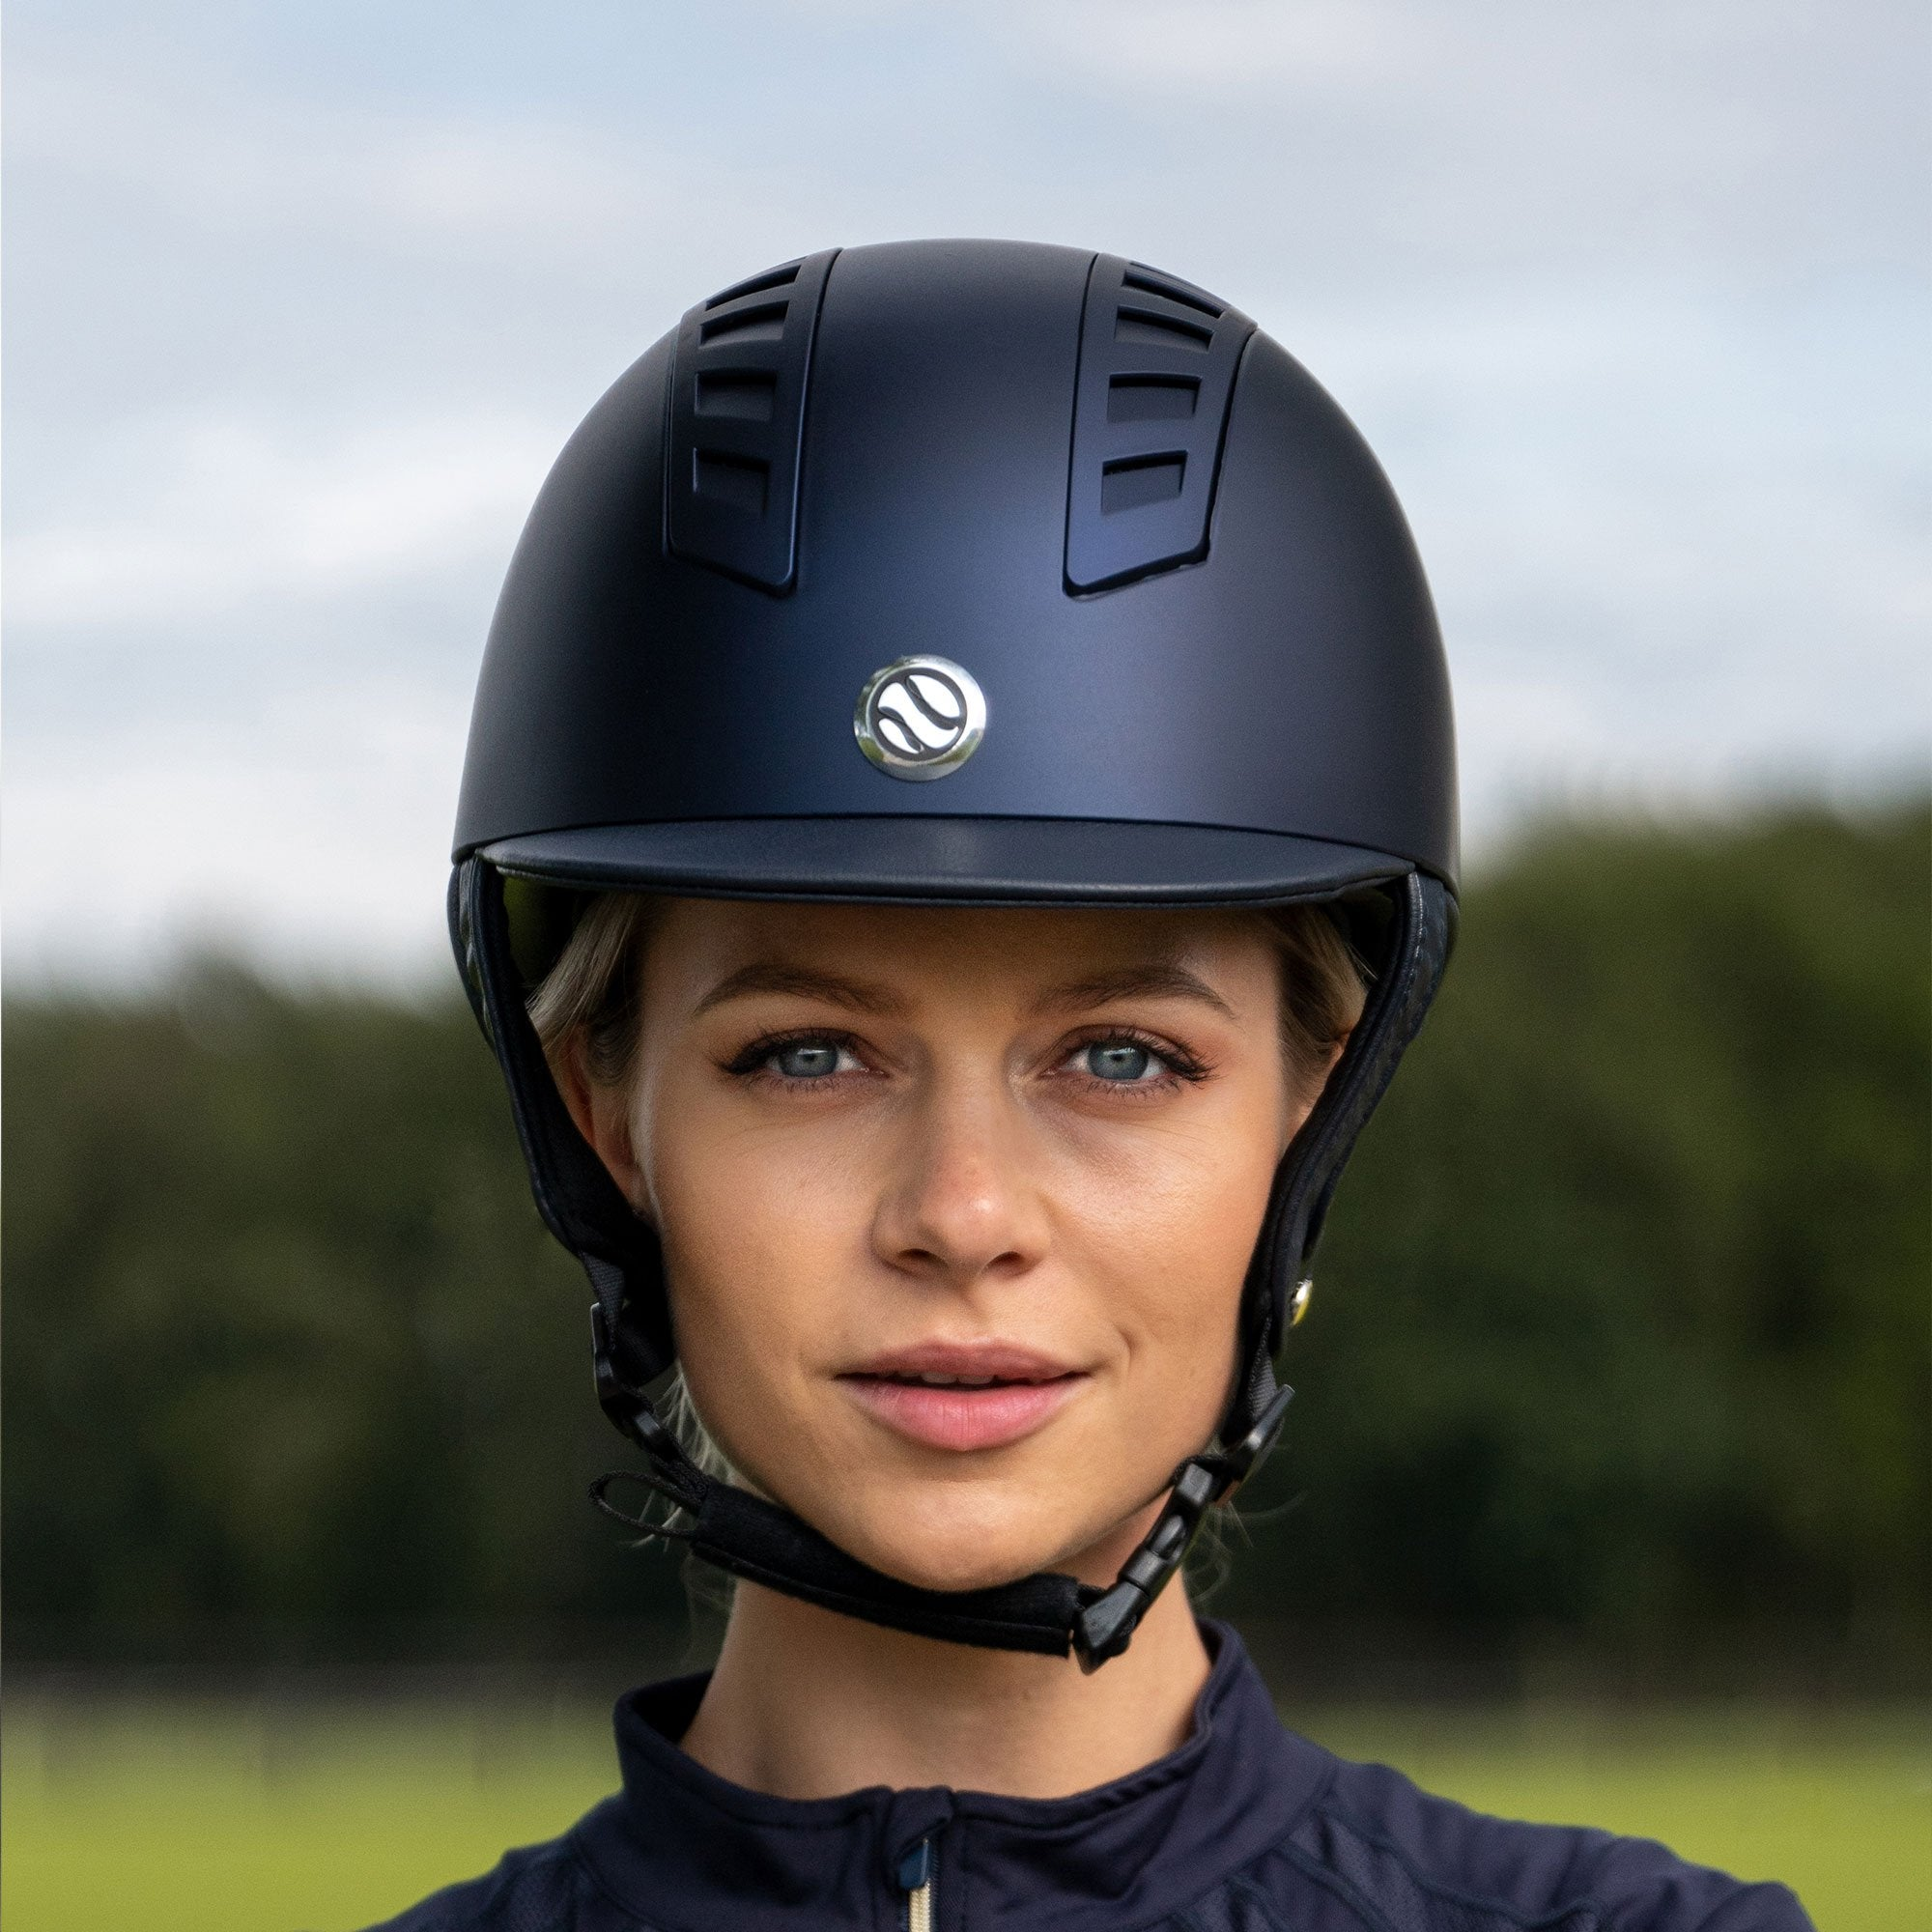 EQ3 Rijhelm Smooth Shell Blauw (5300223344795)